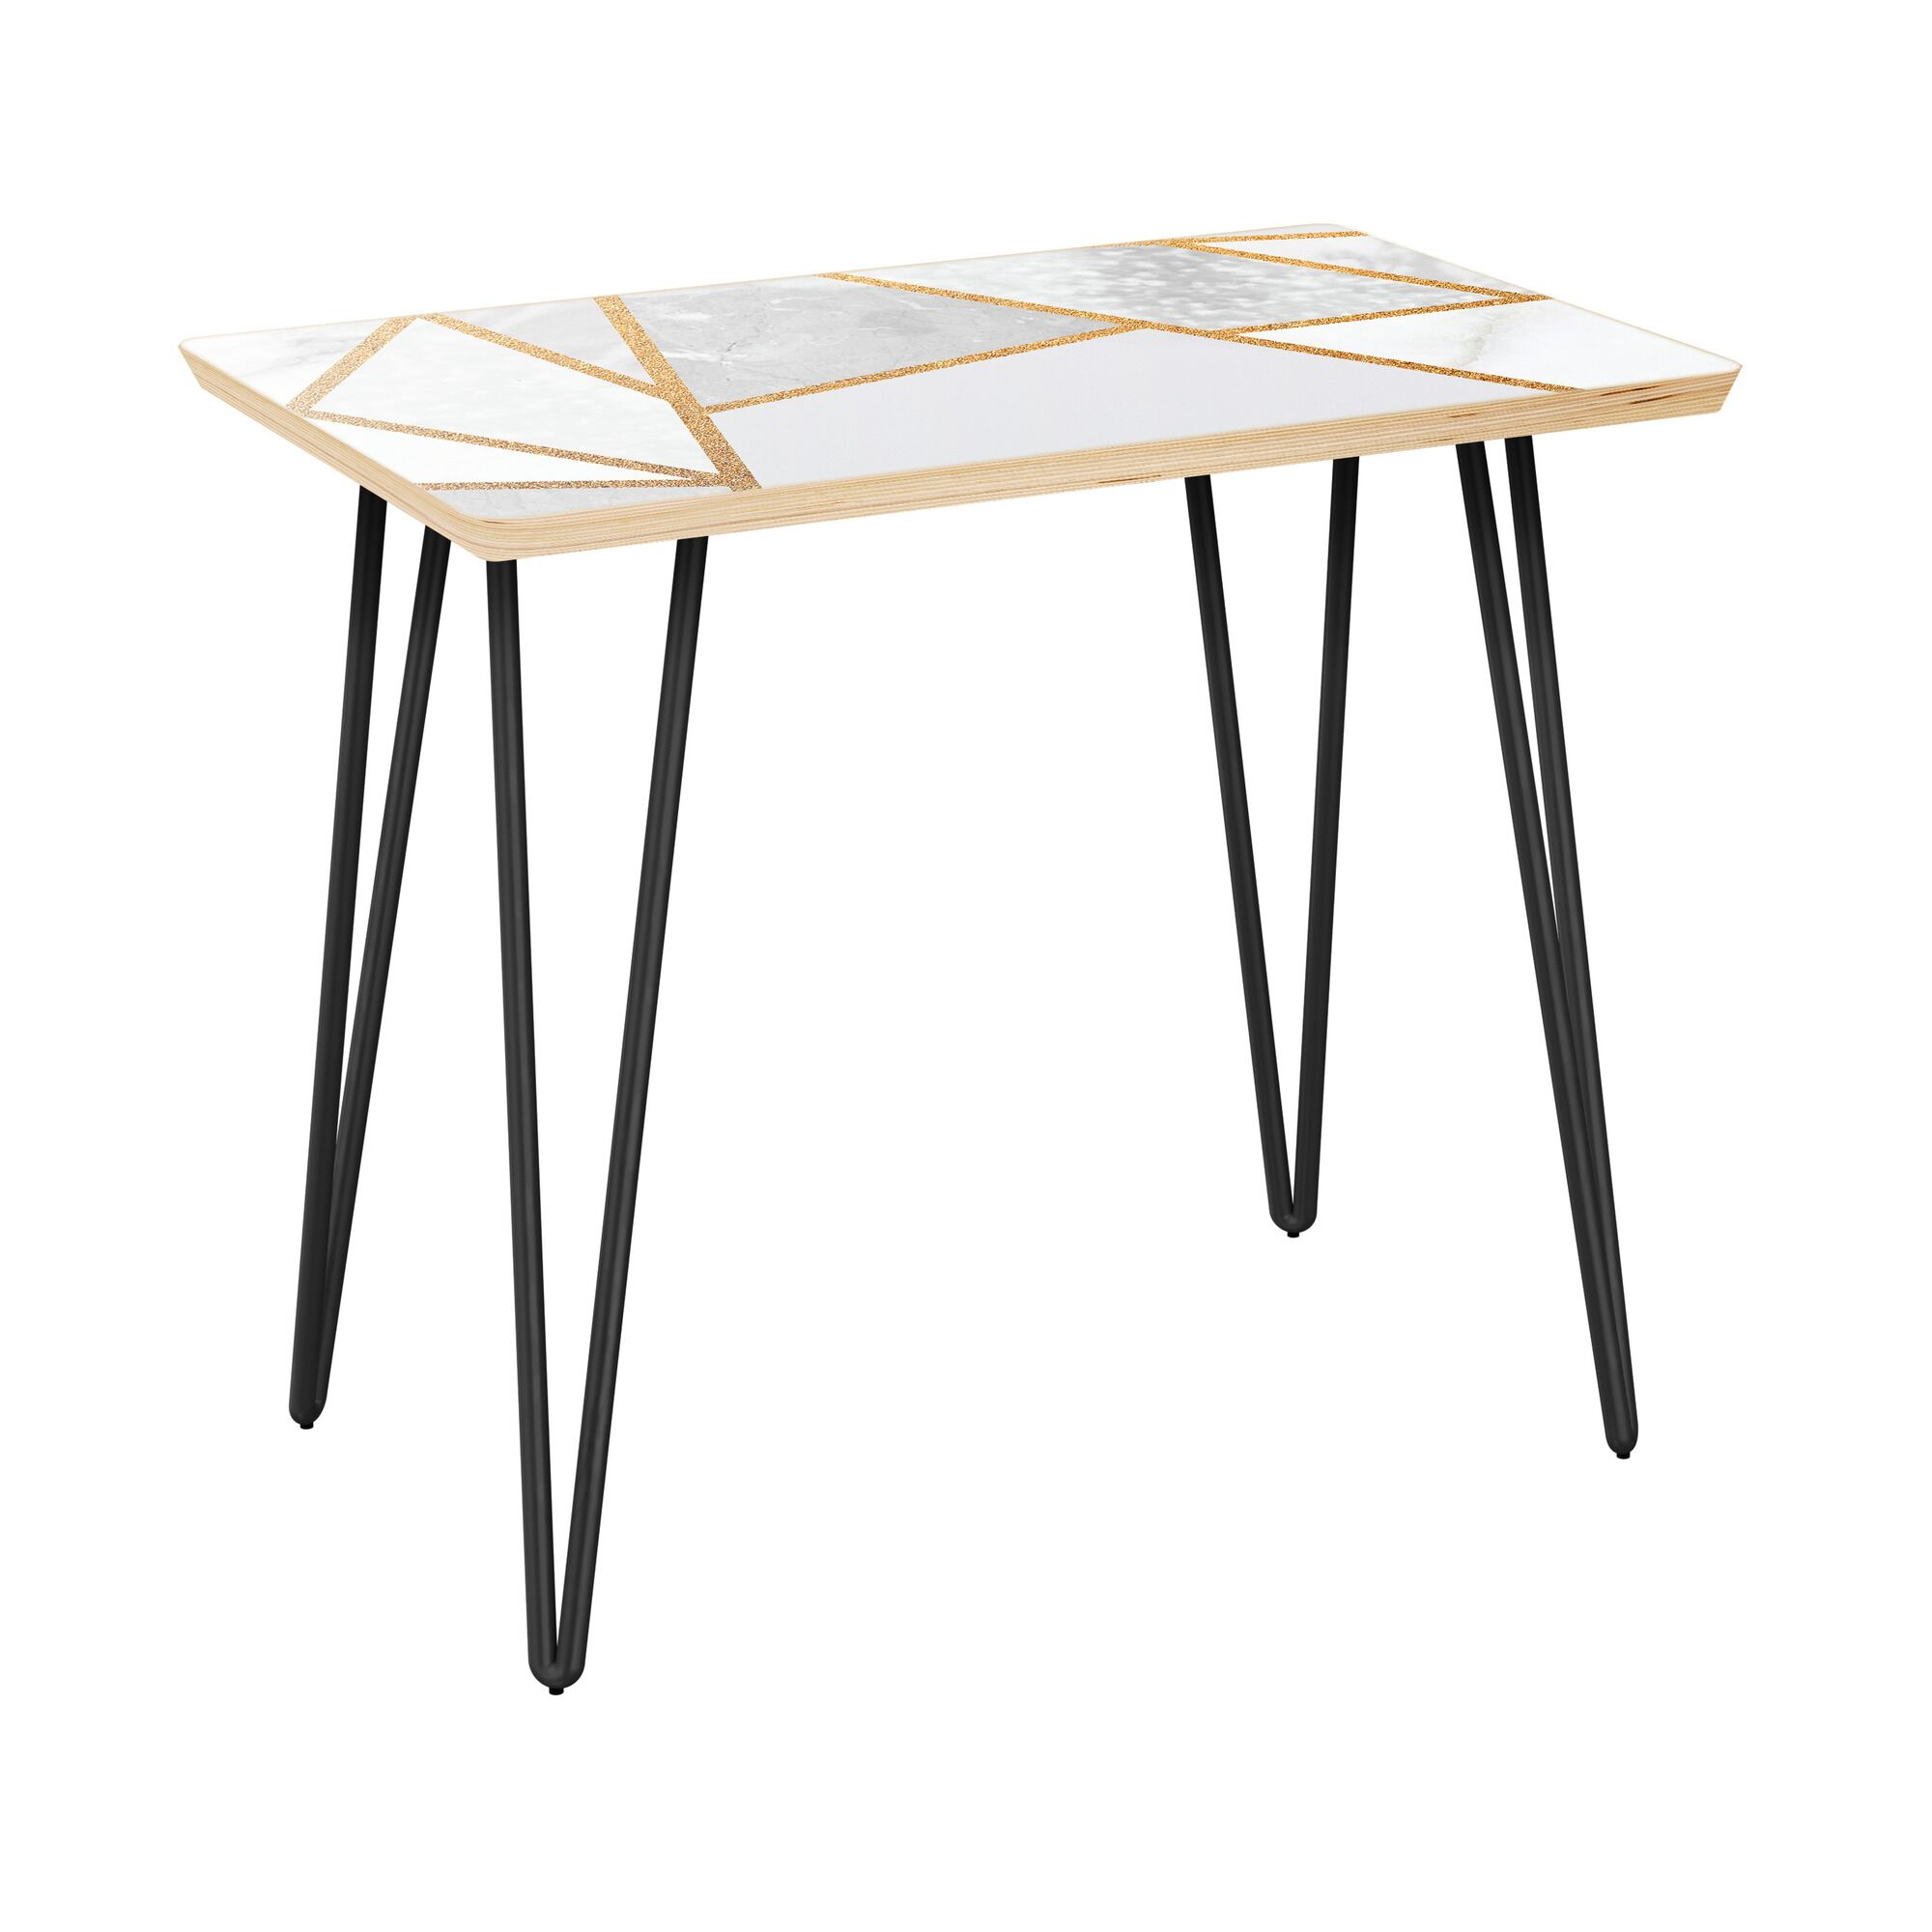 Gutshall End Table Table Top Color: Natural, Table Base Color: Black